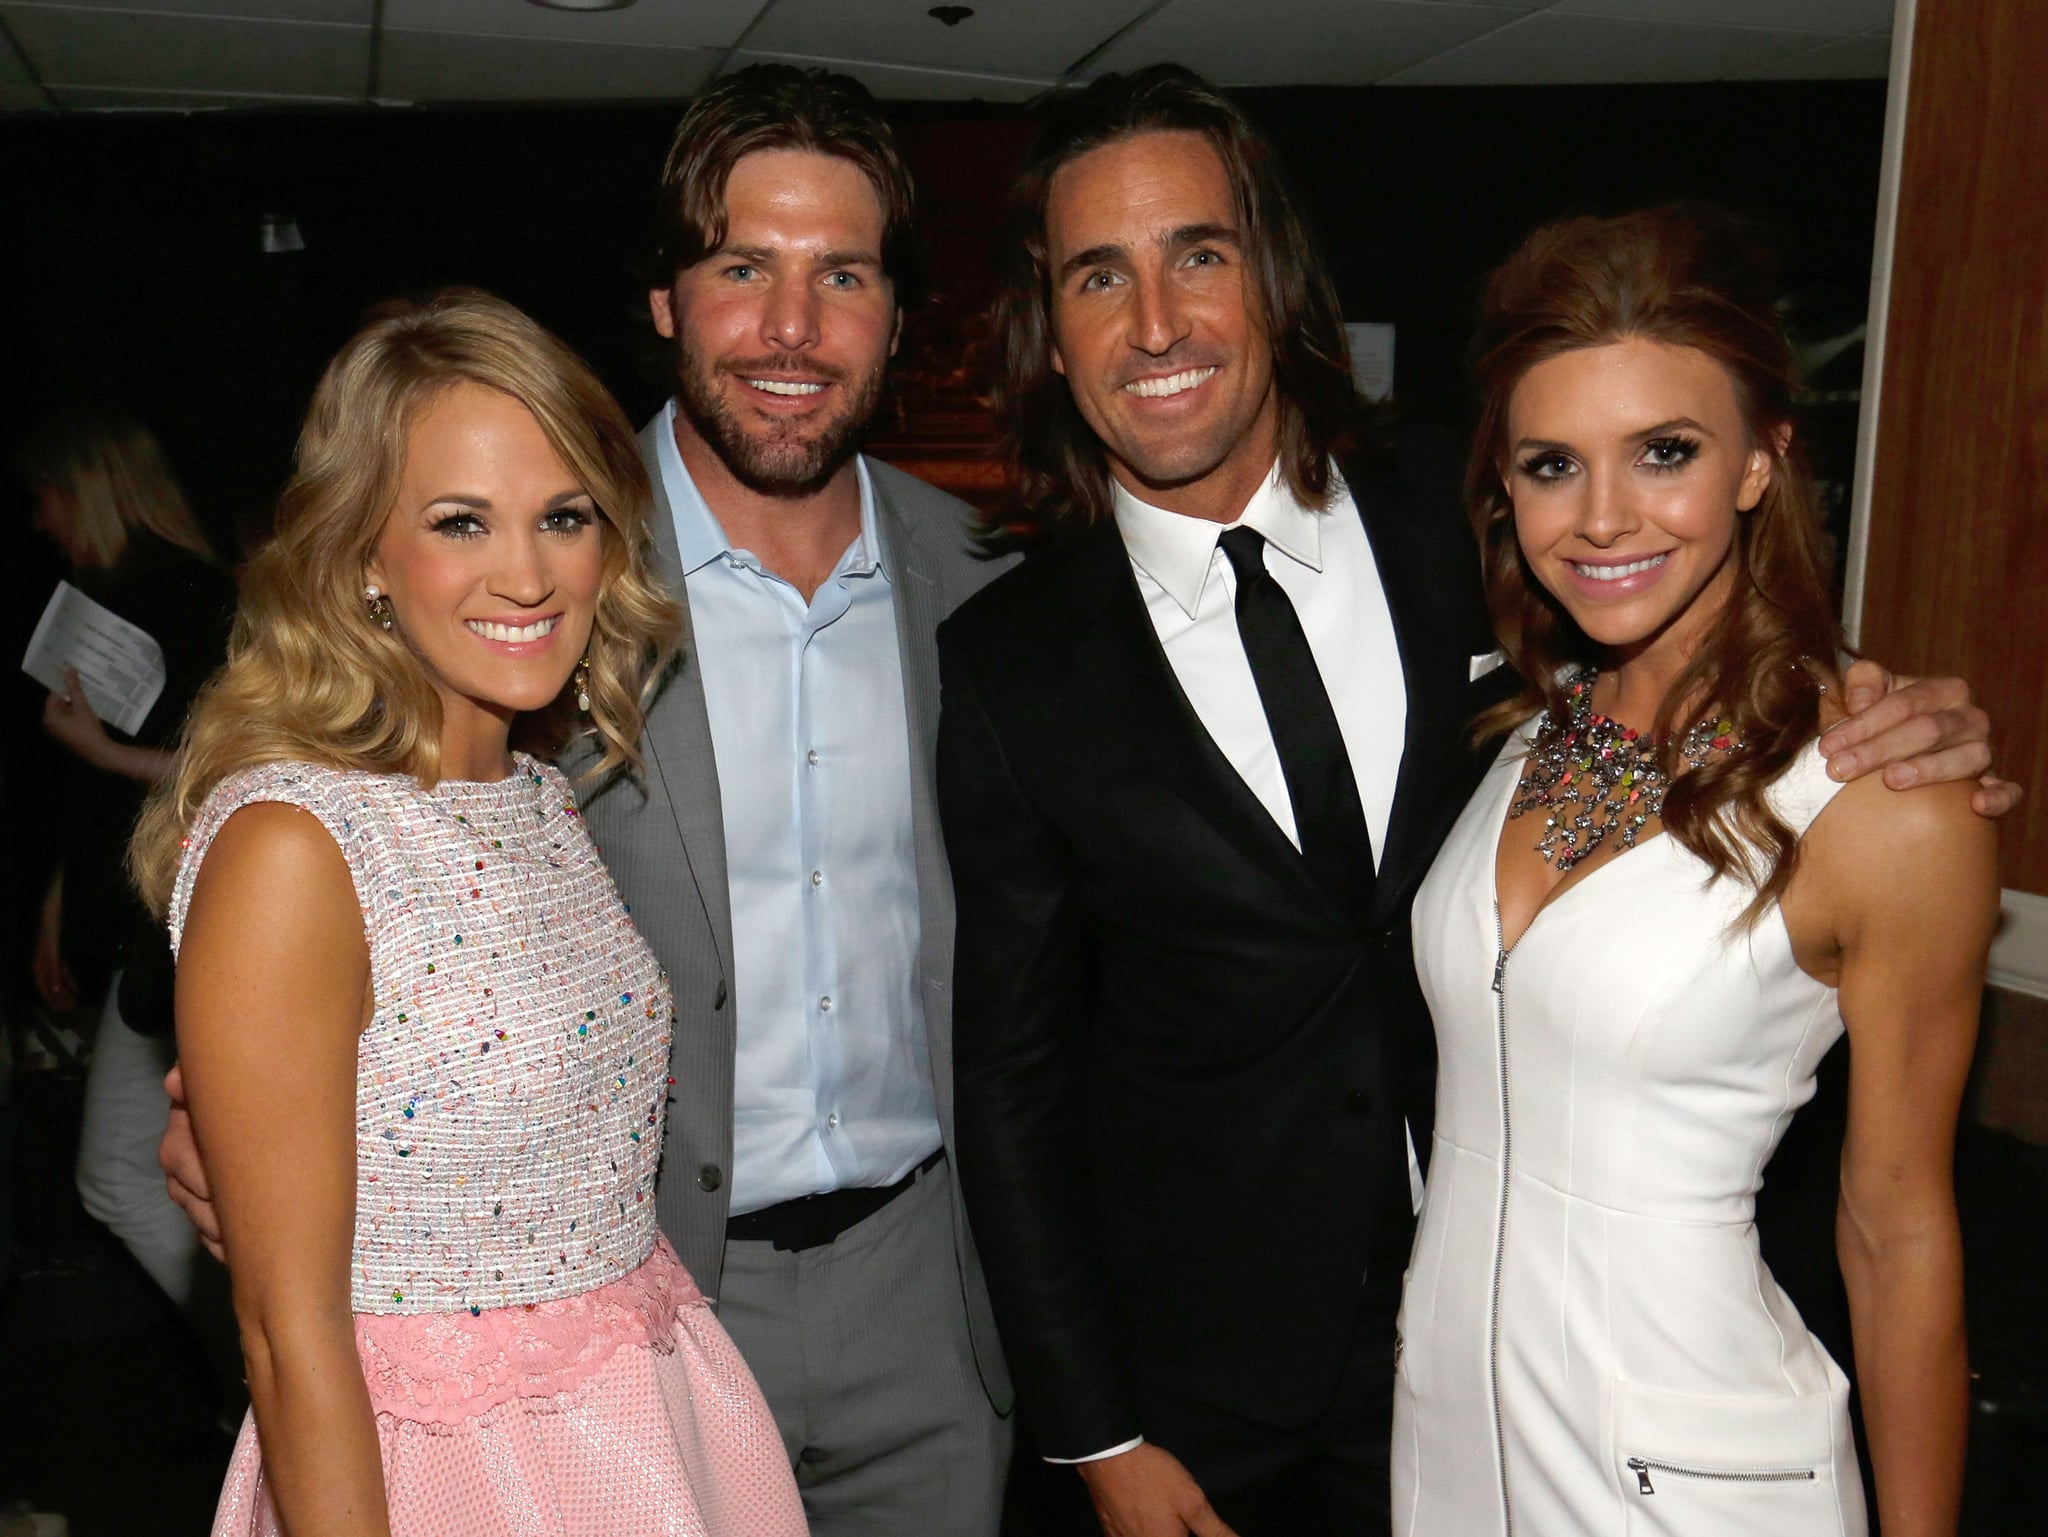 Carrie underwood and her husband mike fisher joined jake for Carrie underwood husband mike fisher